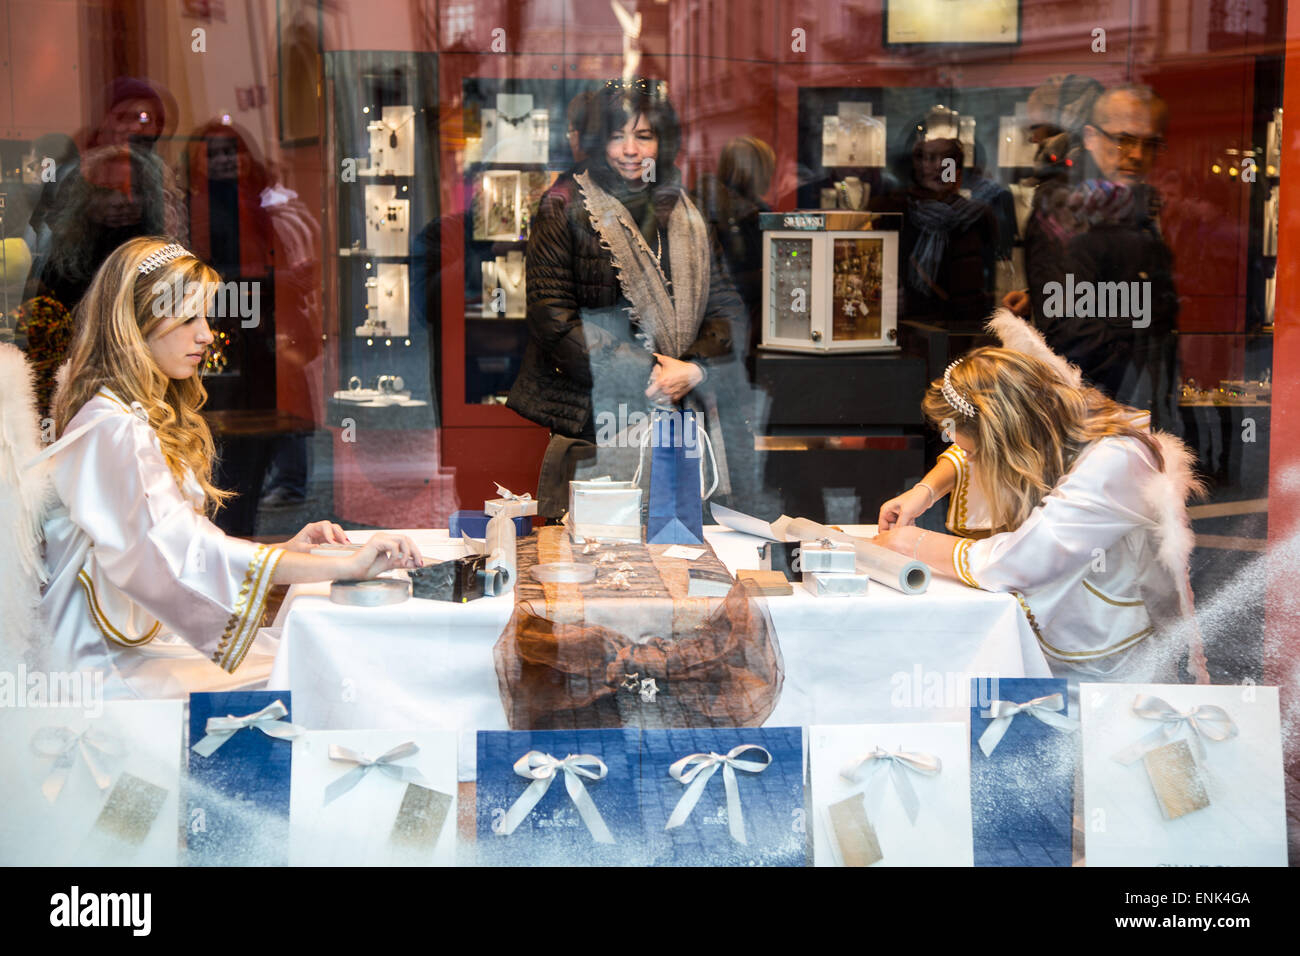 Prague, Old City district, ledies in a Christmas shop window - Stock Image